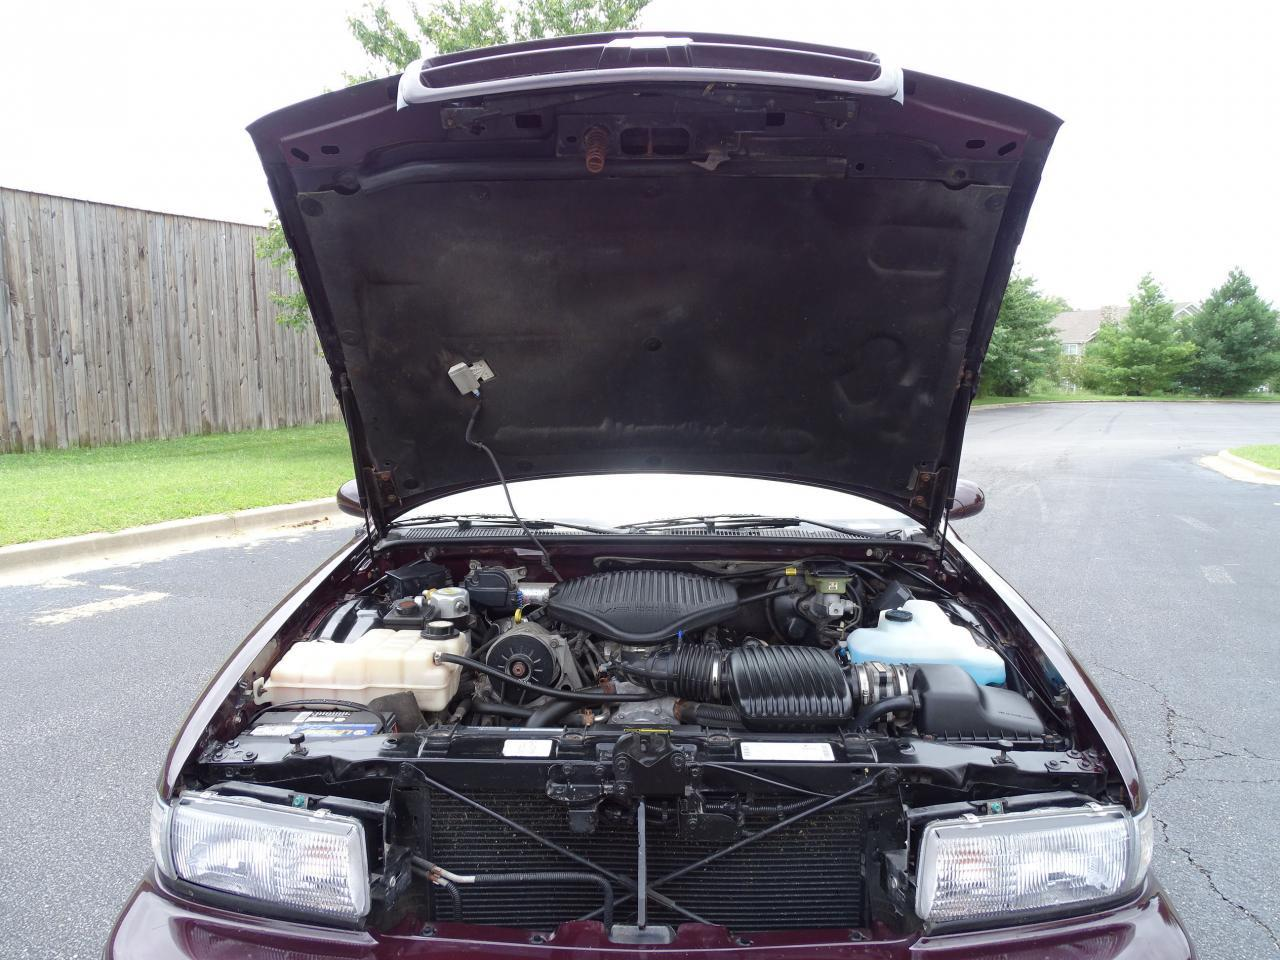 Large Picture of '96 Chevrolet Impala - $19,000.00 Offered by Gateway Classic Cars - St. Louis - QB5K